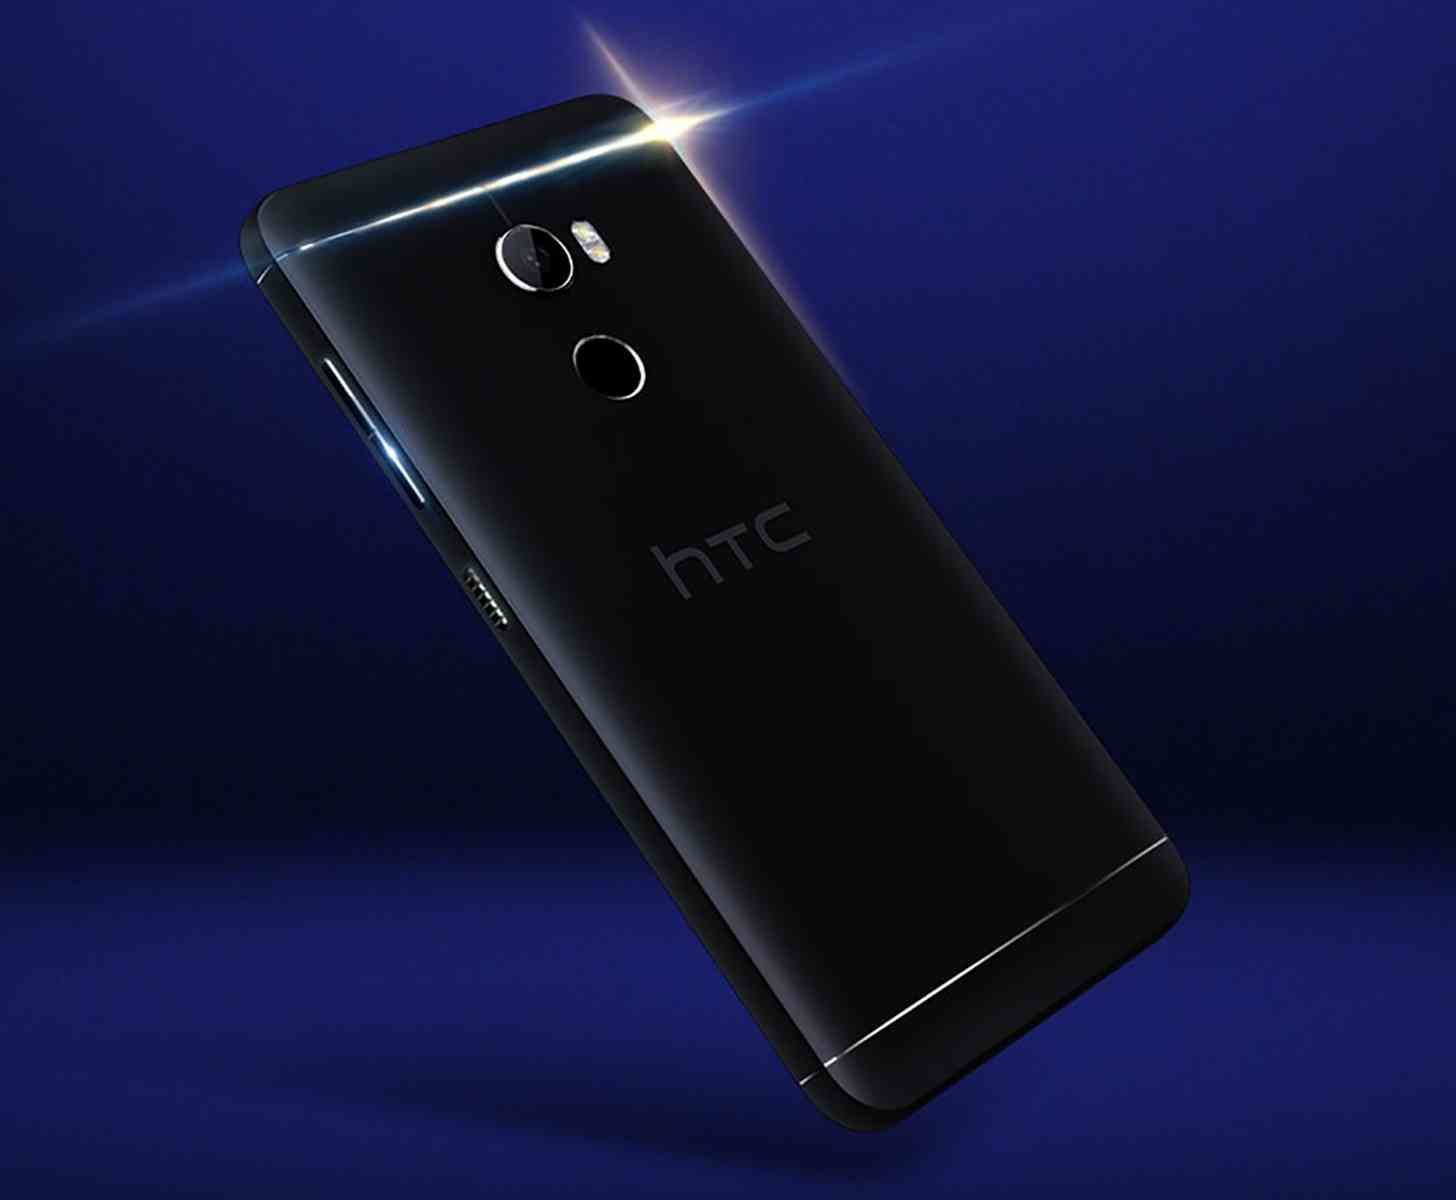 HTC One X10 official black